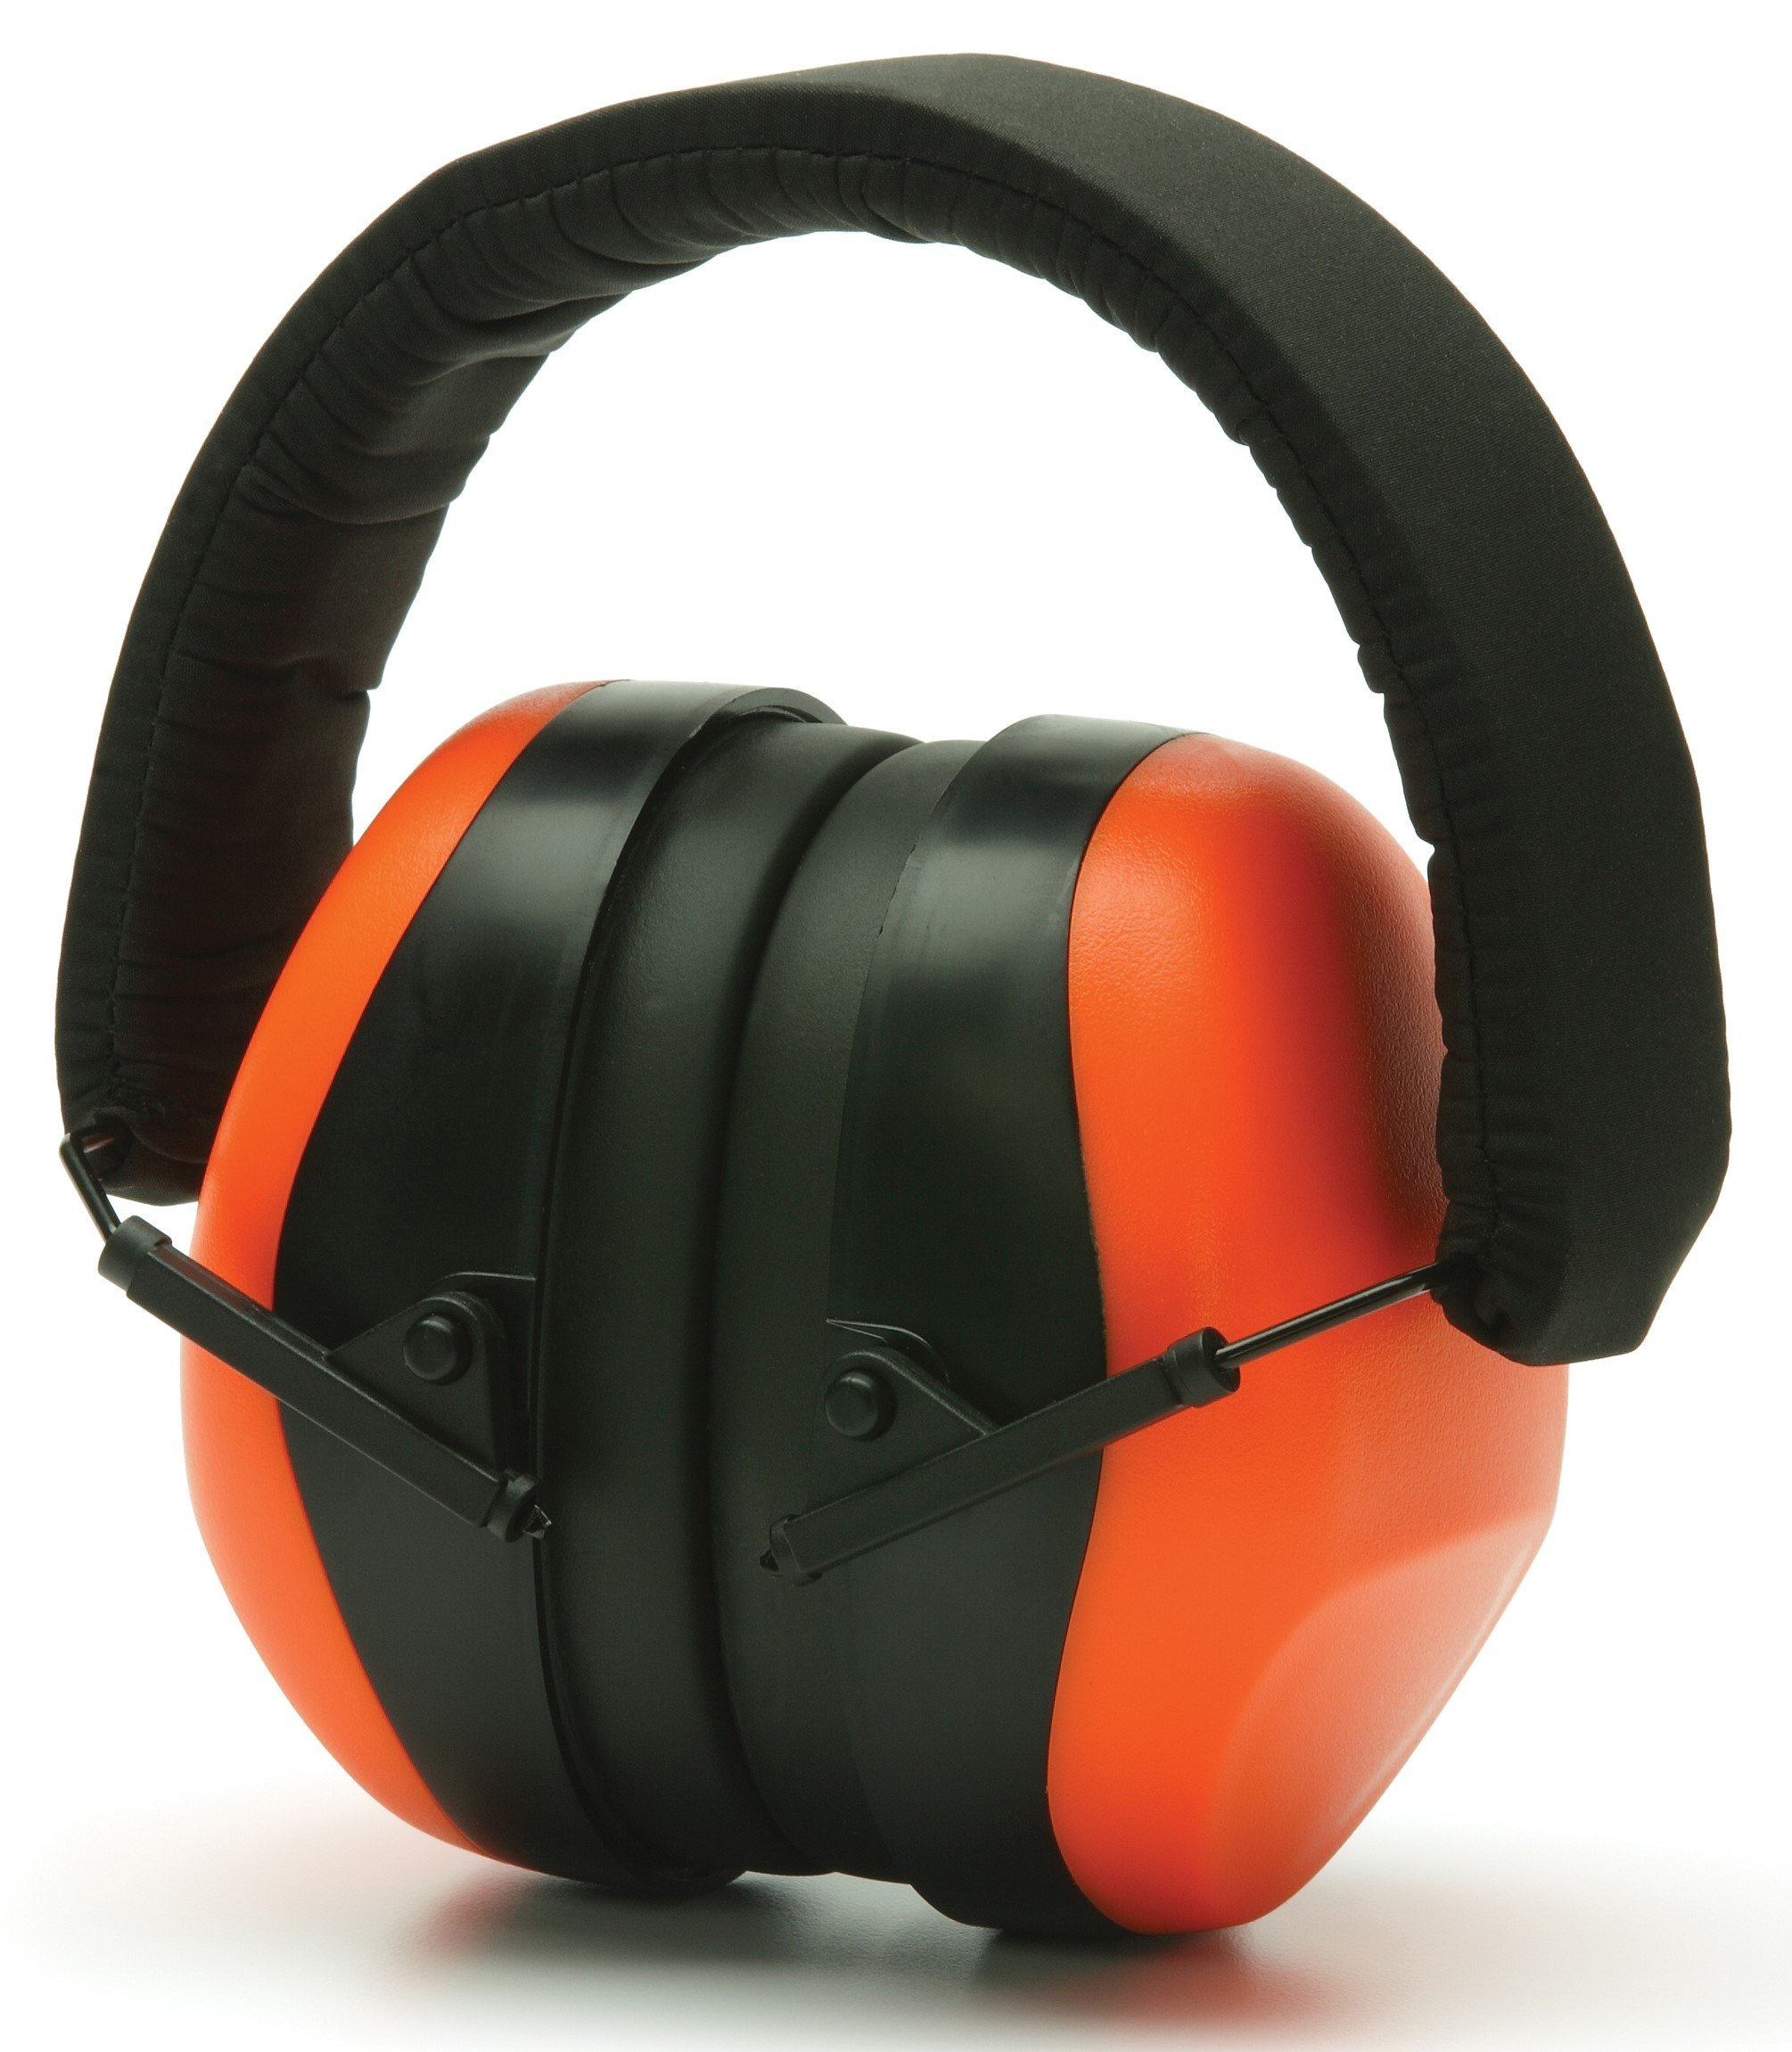 Pyramex PM80 Series Ear Muff NRR26dB, Individually-Packaged, High-Vis Orange